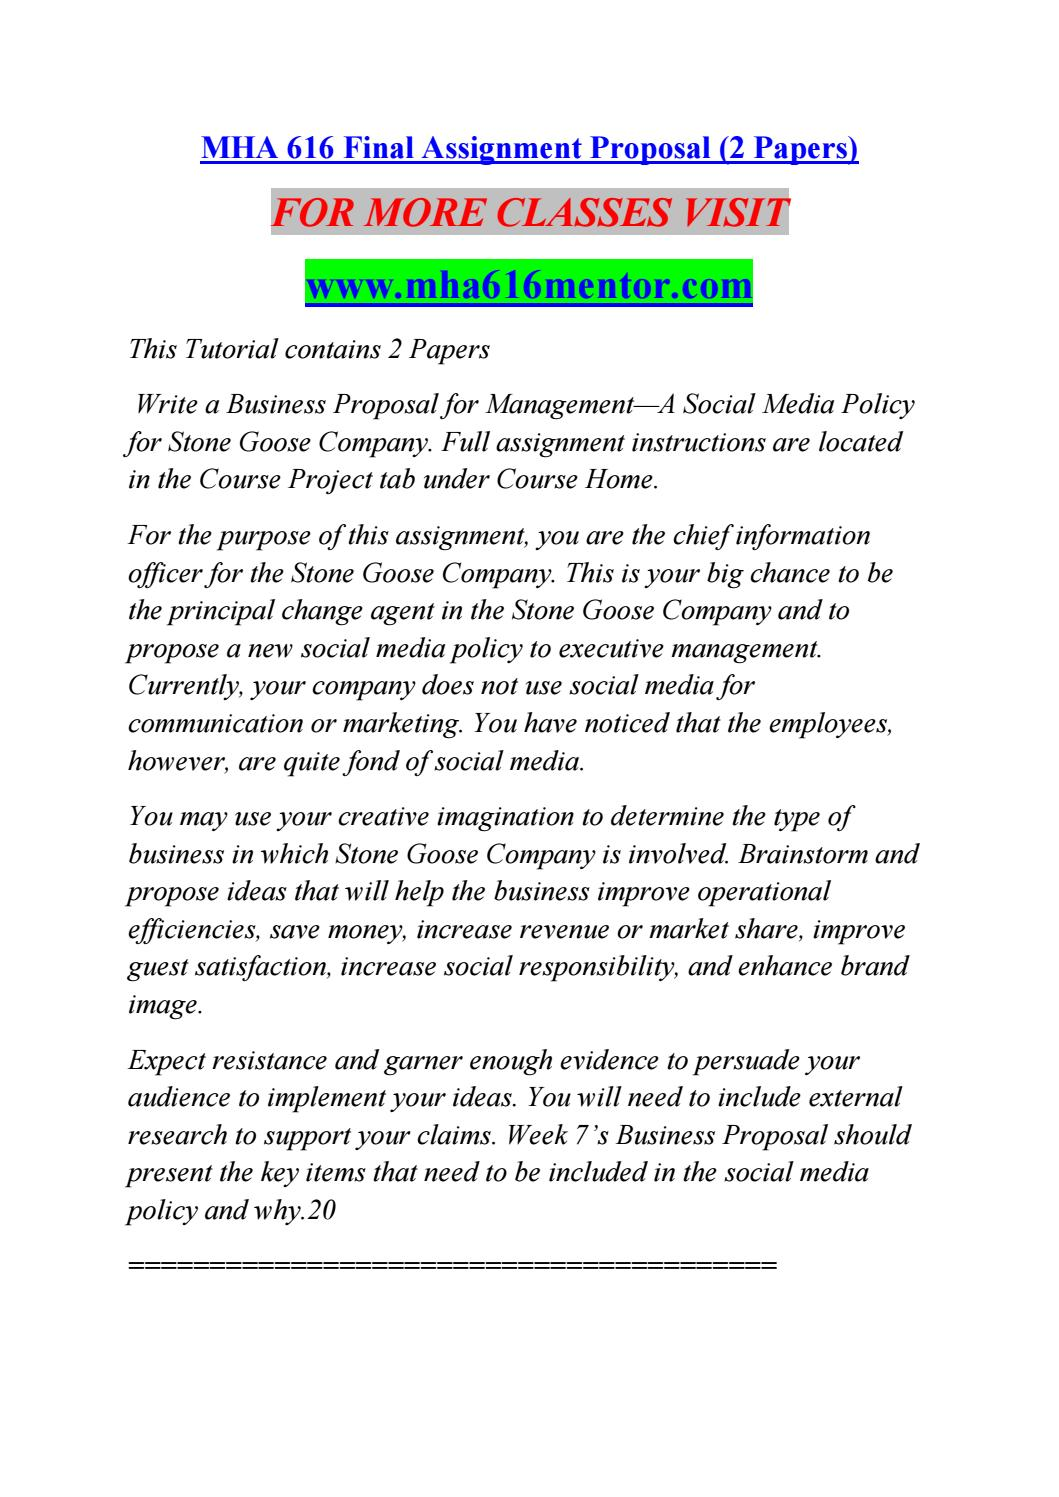 business proposal final for thomas money service essay Research proposal a guide to writing effective research proposals this article explains how to write a research proposal, including the purpose of the proposal, what to include, the structure and common problems that are encountered by students as they research or write their proposal.